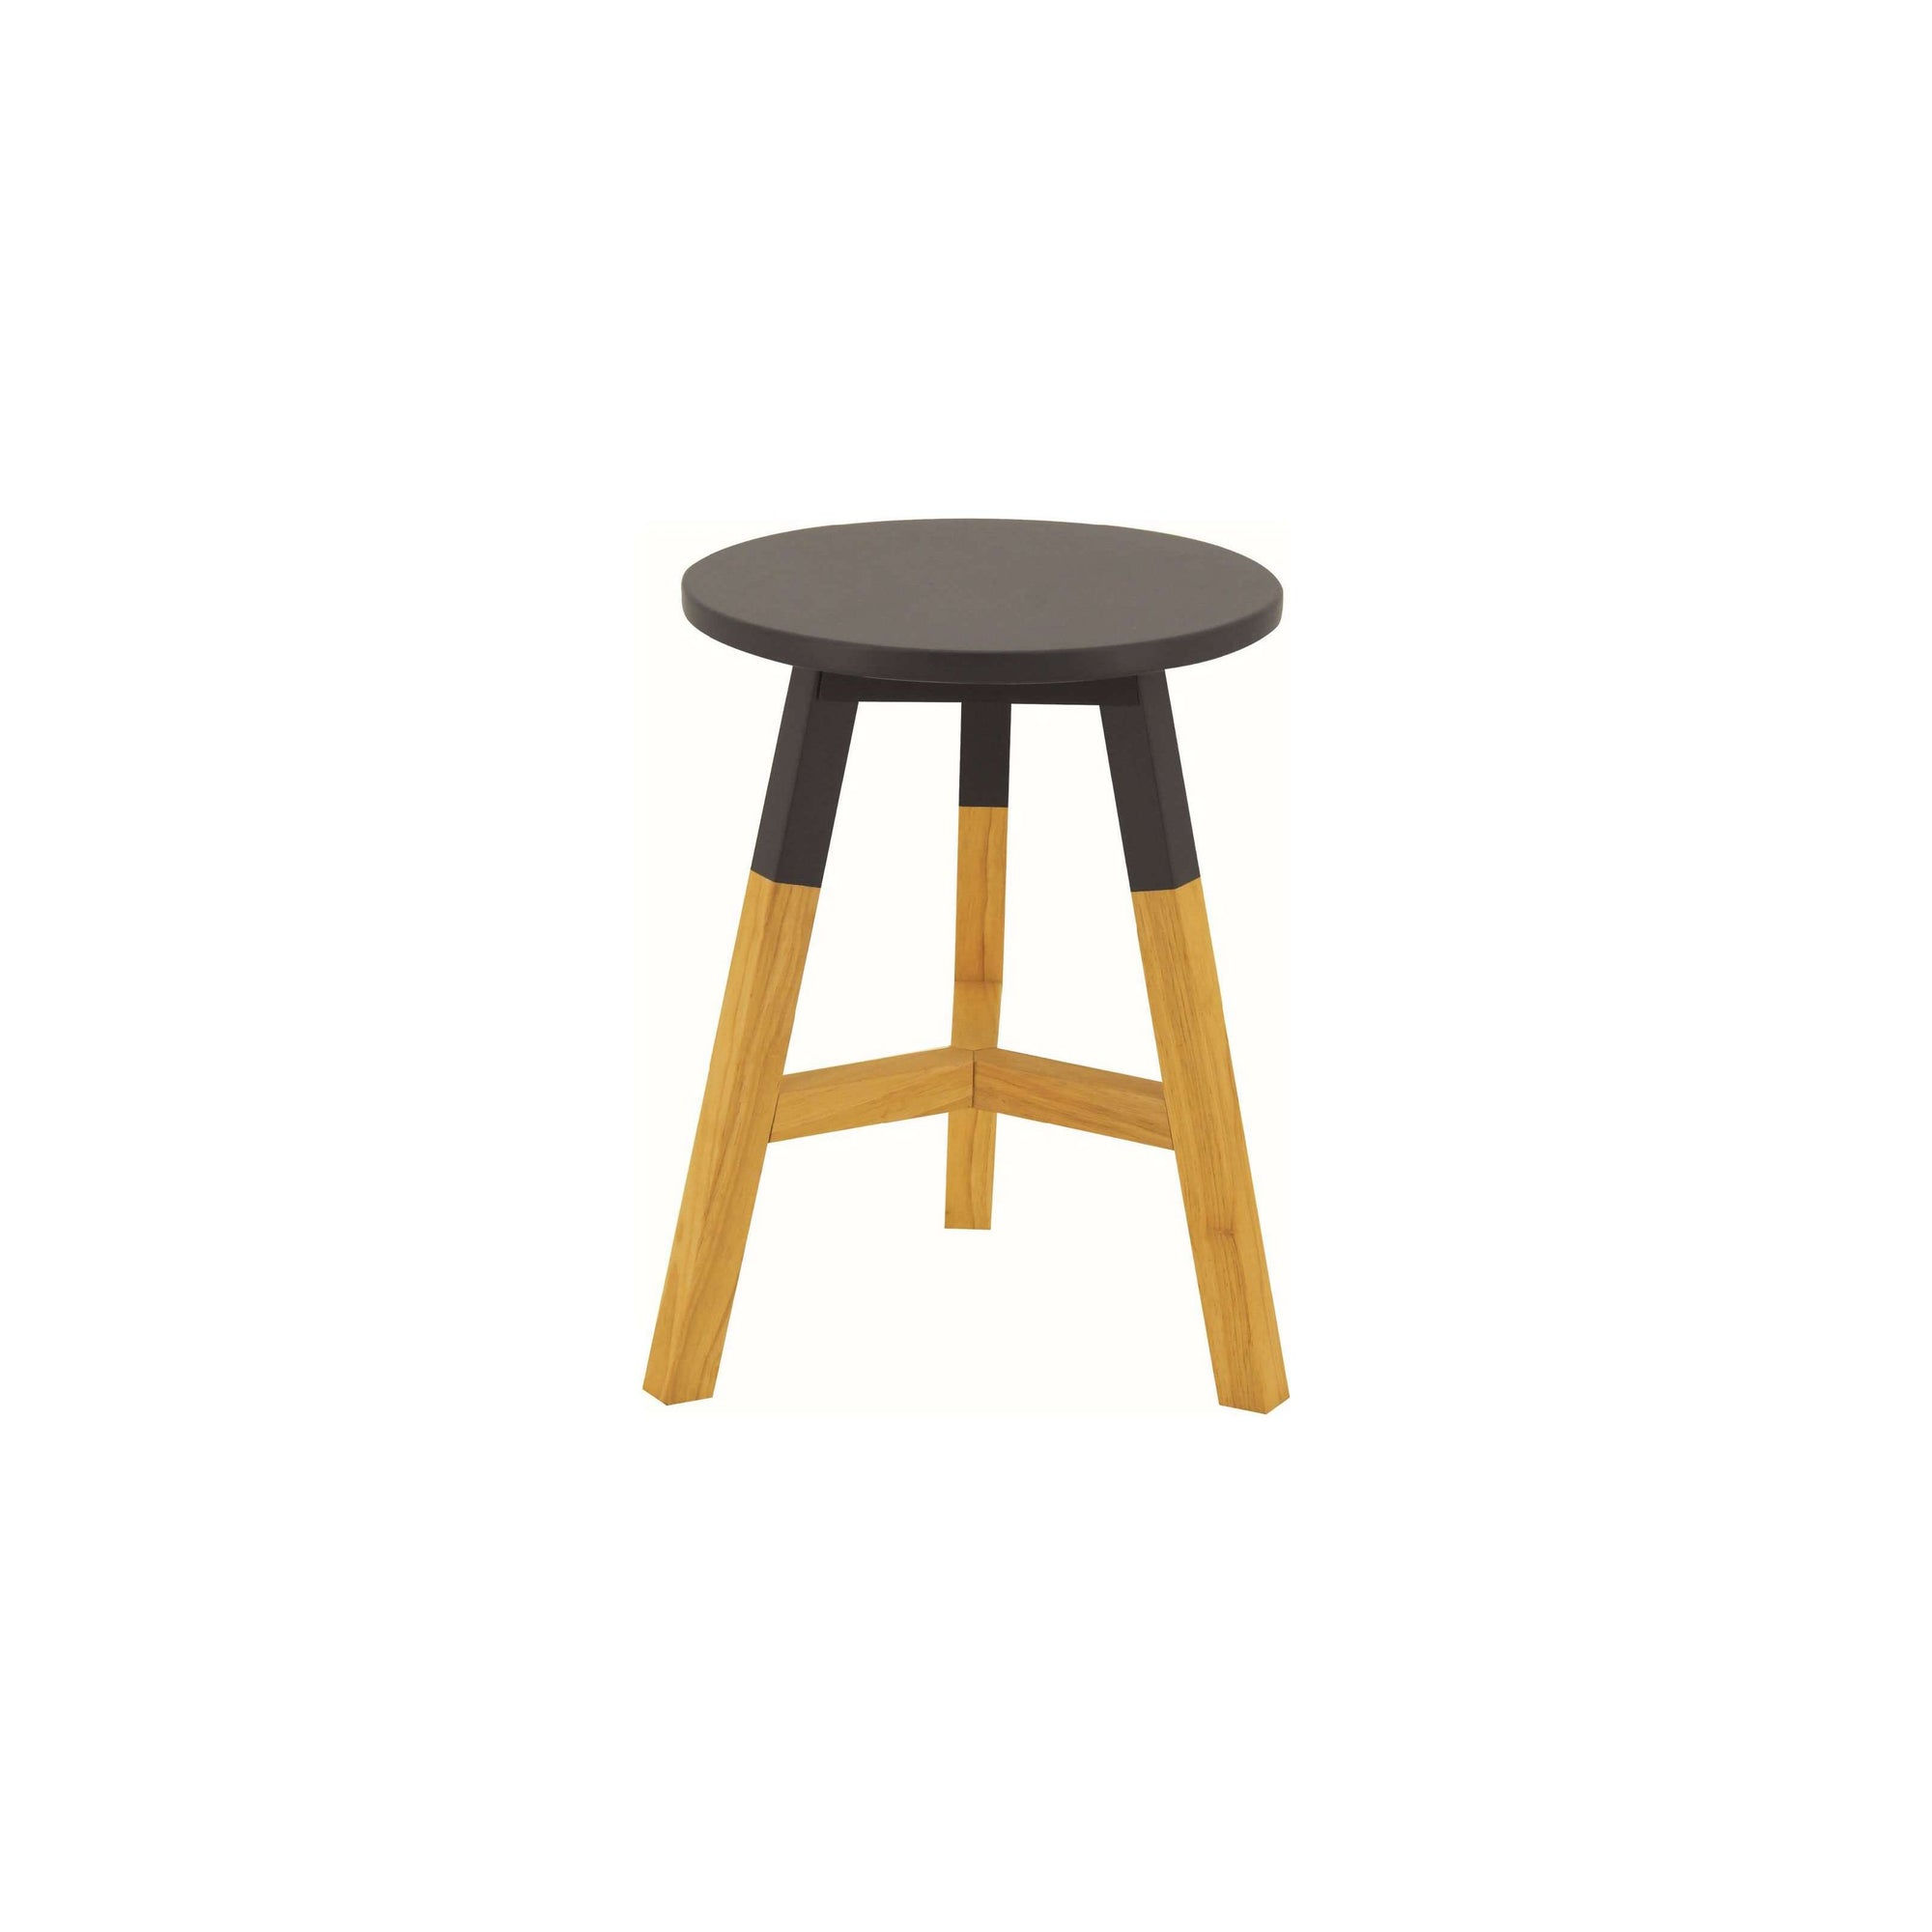 REBA 4 X Stool with Graphite Grey Lacquered Top, Natural Colour Leg